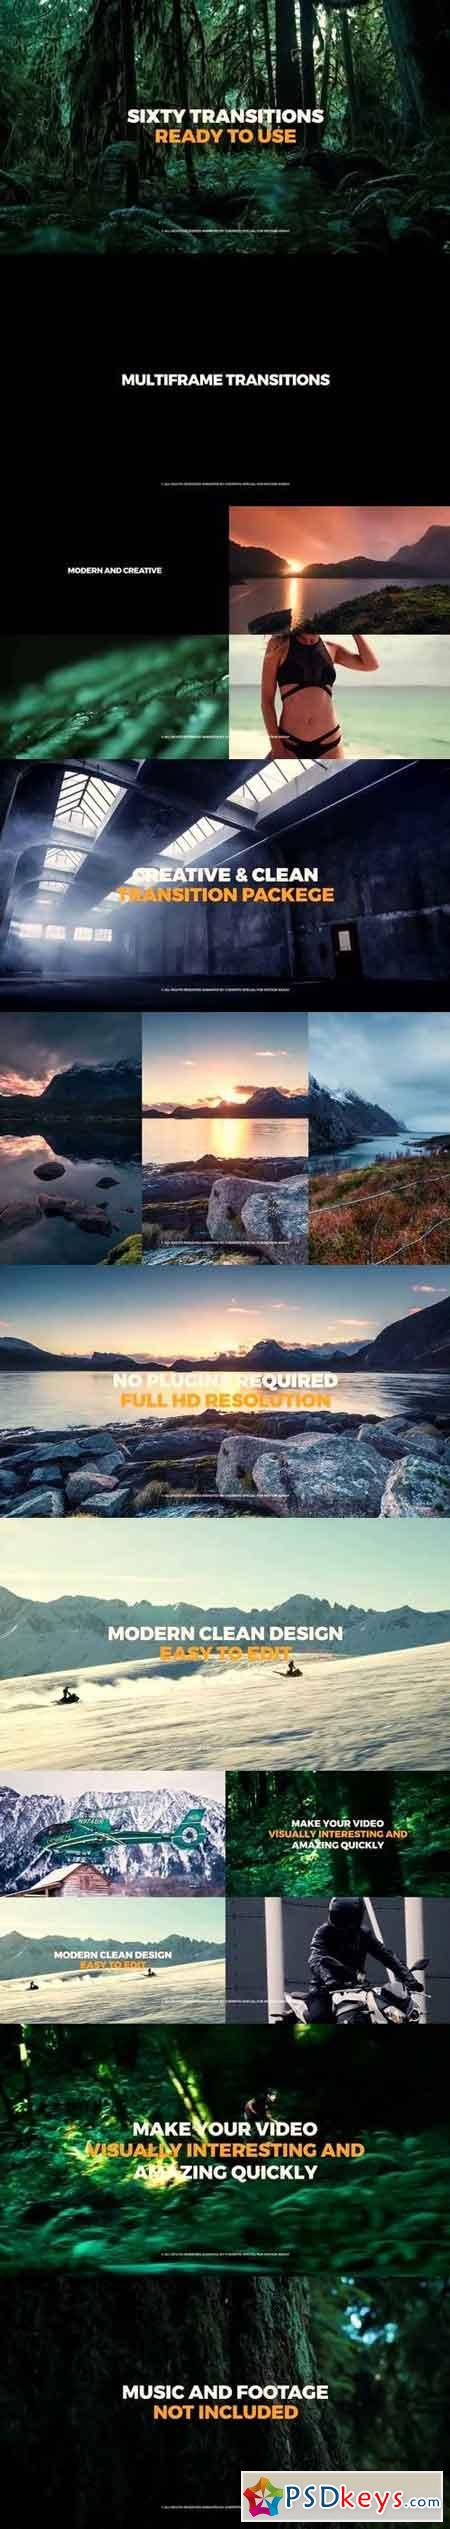 Multiframe Transitions Premiere Pro Templates 57374